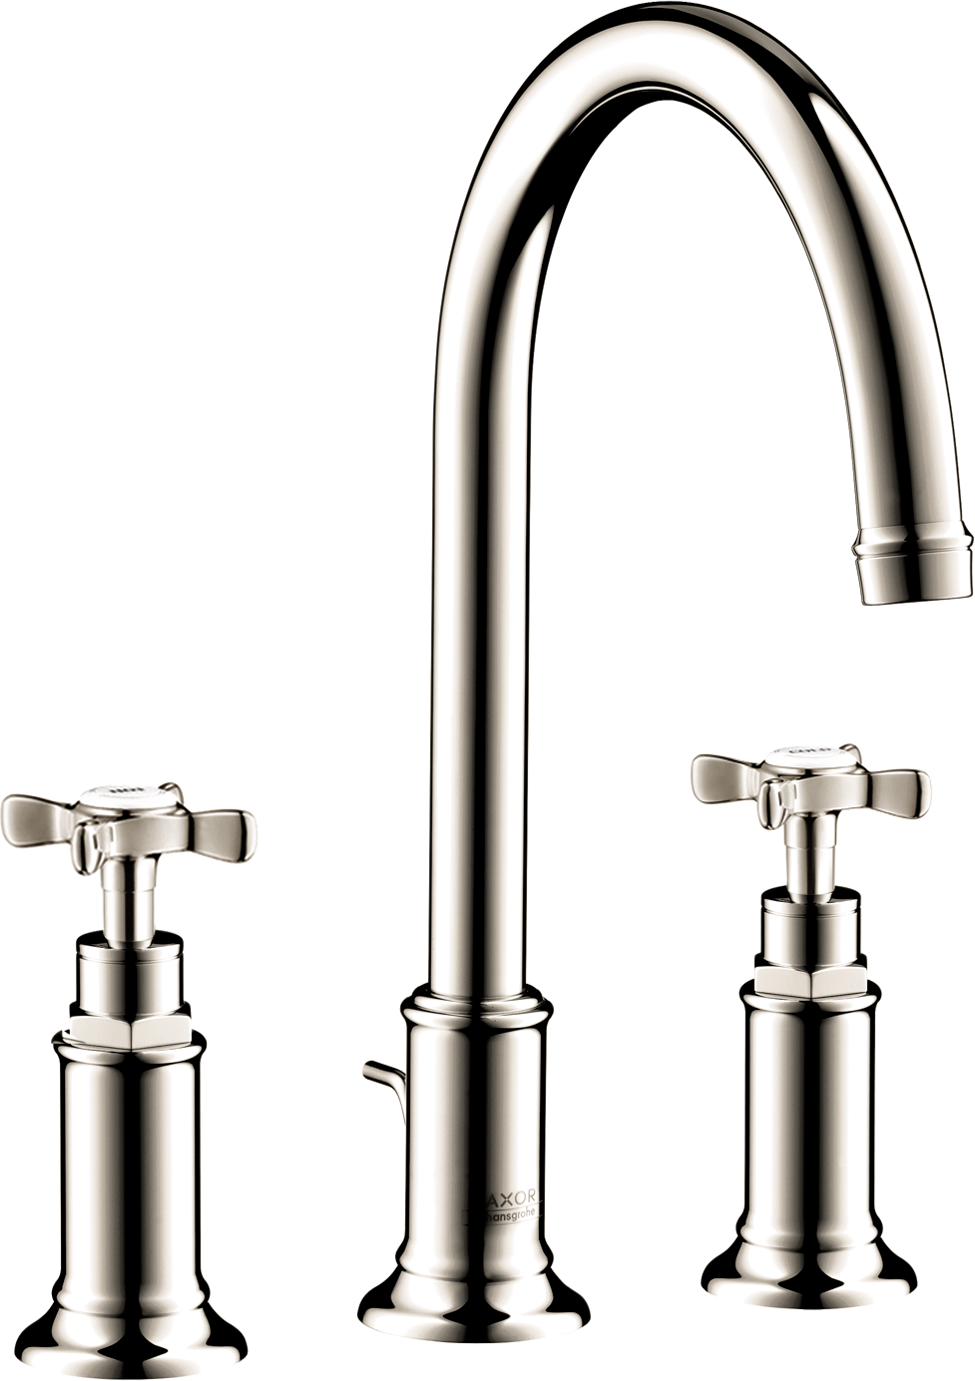 Axor AXOR Montreux Widespread Faucet with Cross Handles, 1.2 GPM